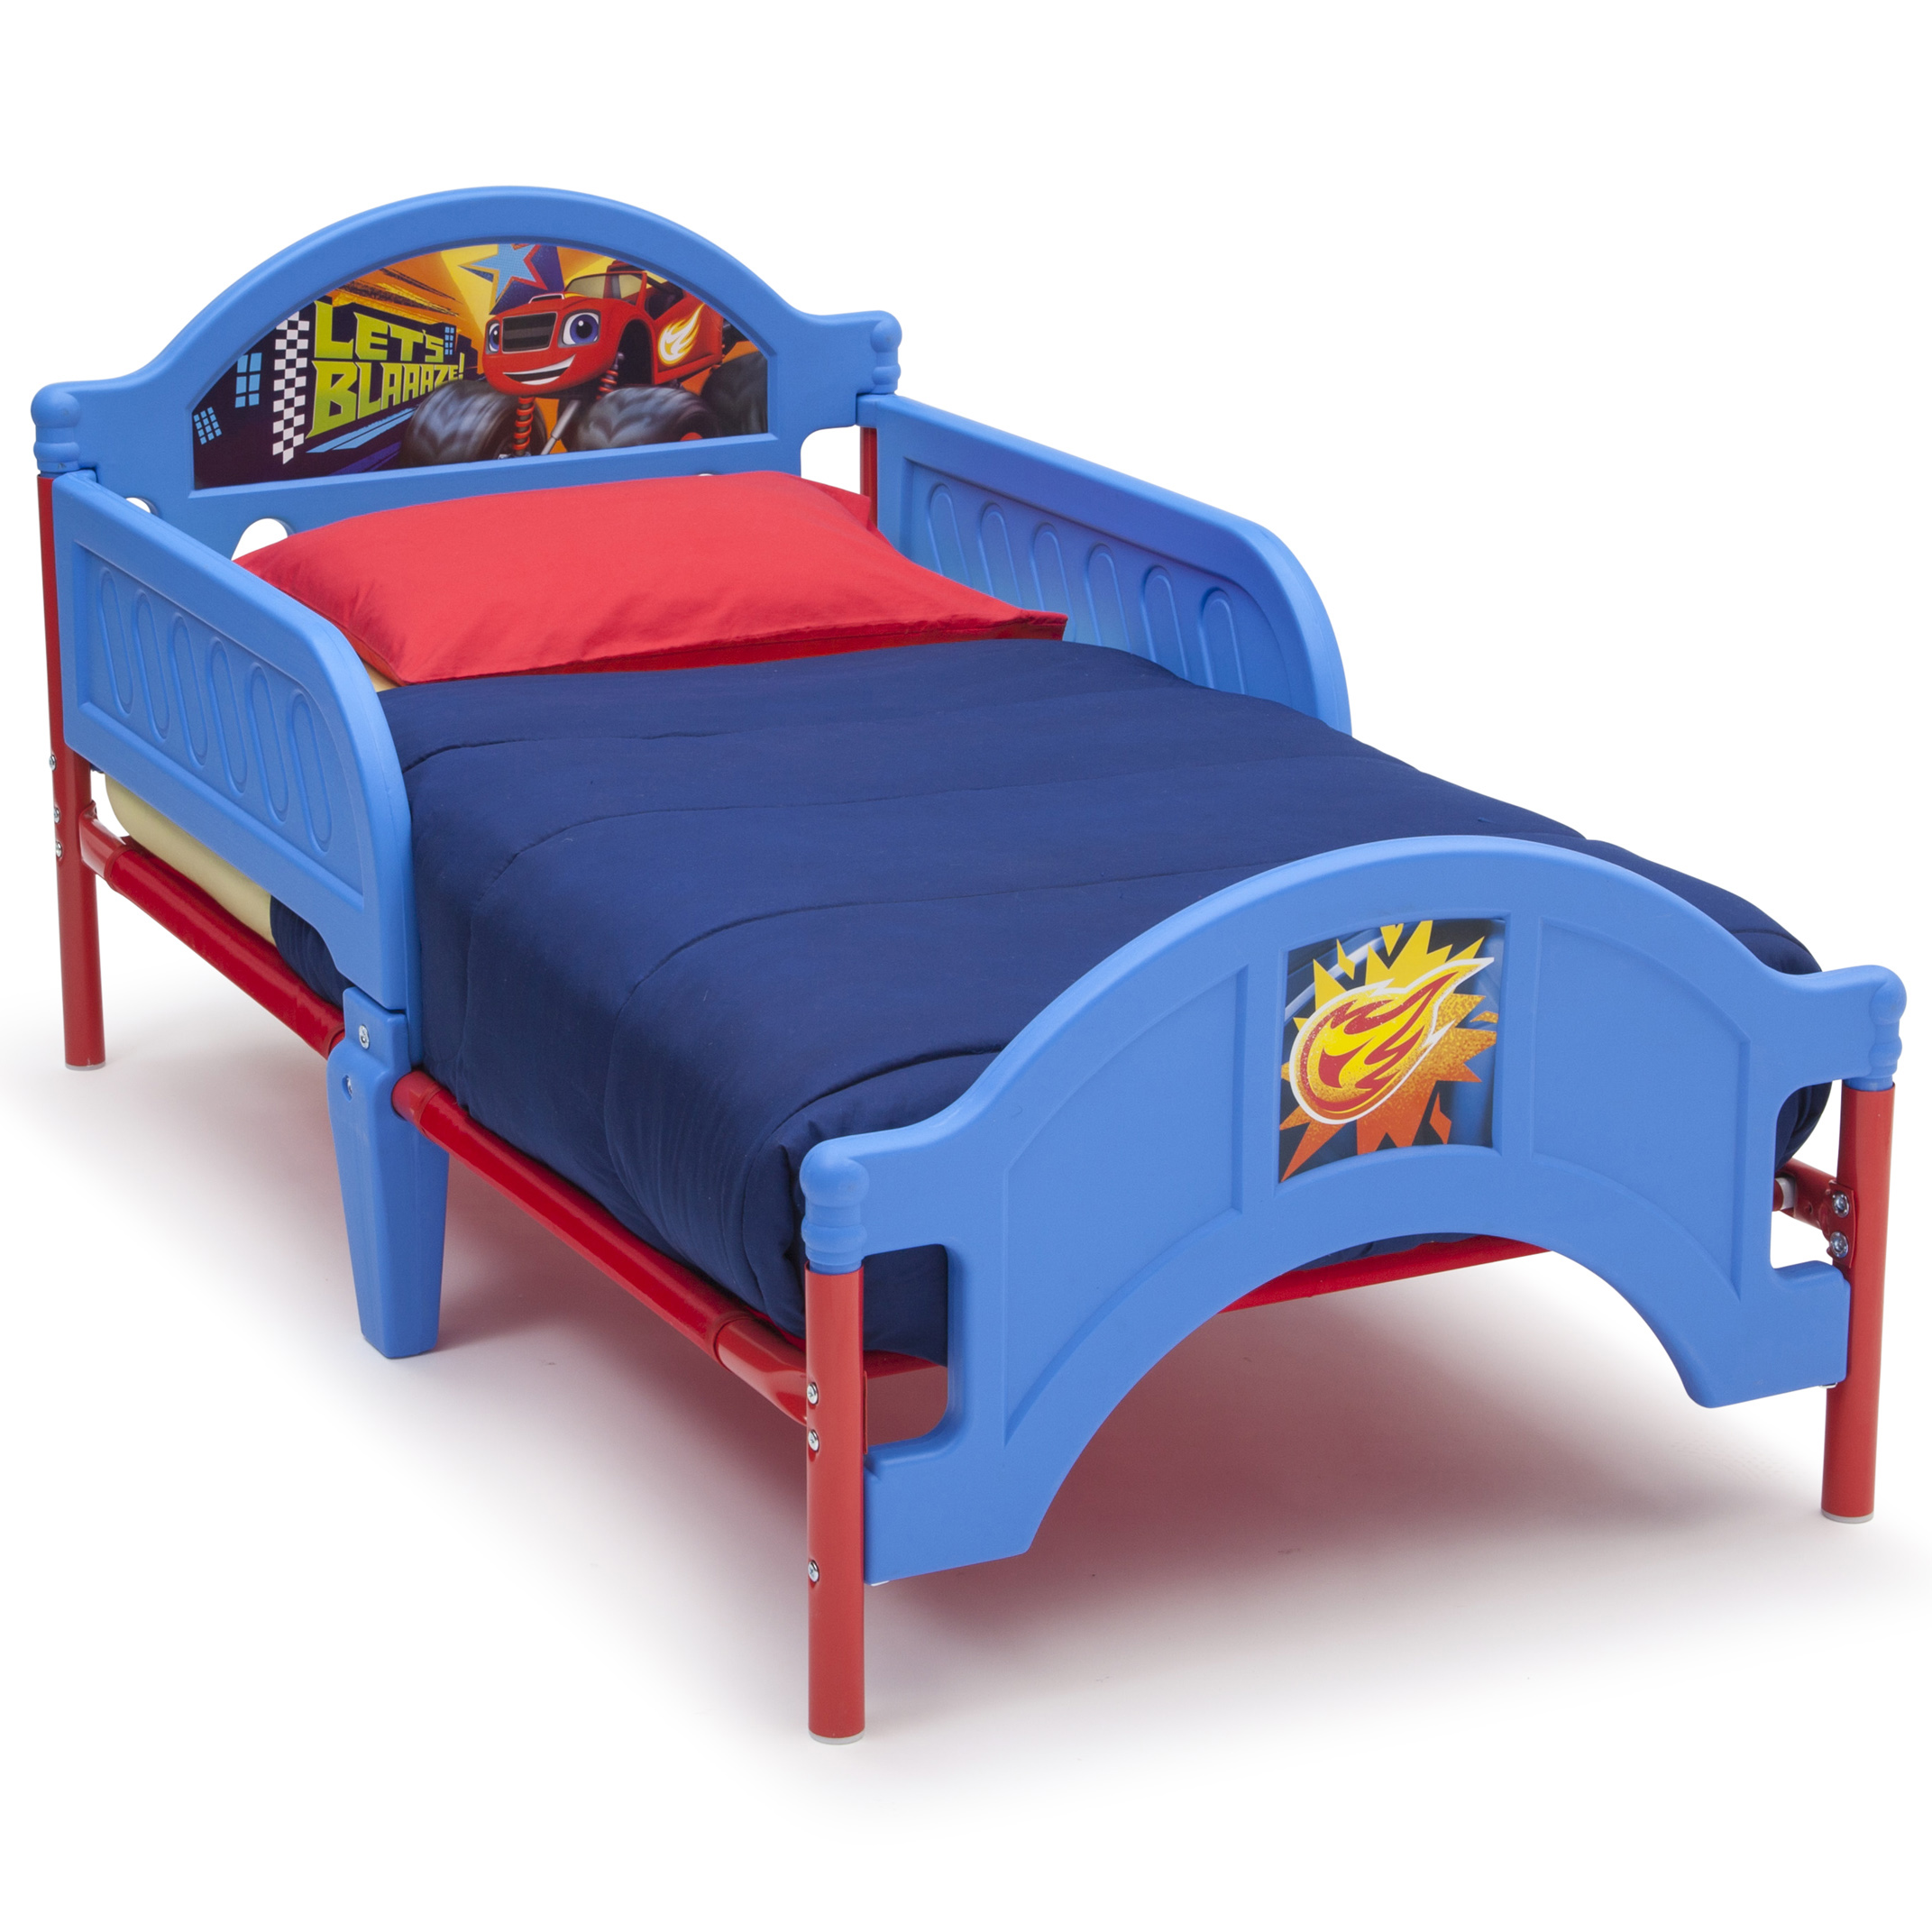 Delta Children Blaze and the Monster Machines Plastic Toddler Bed